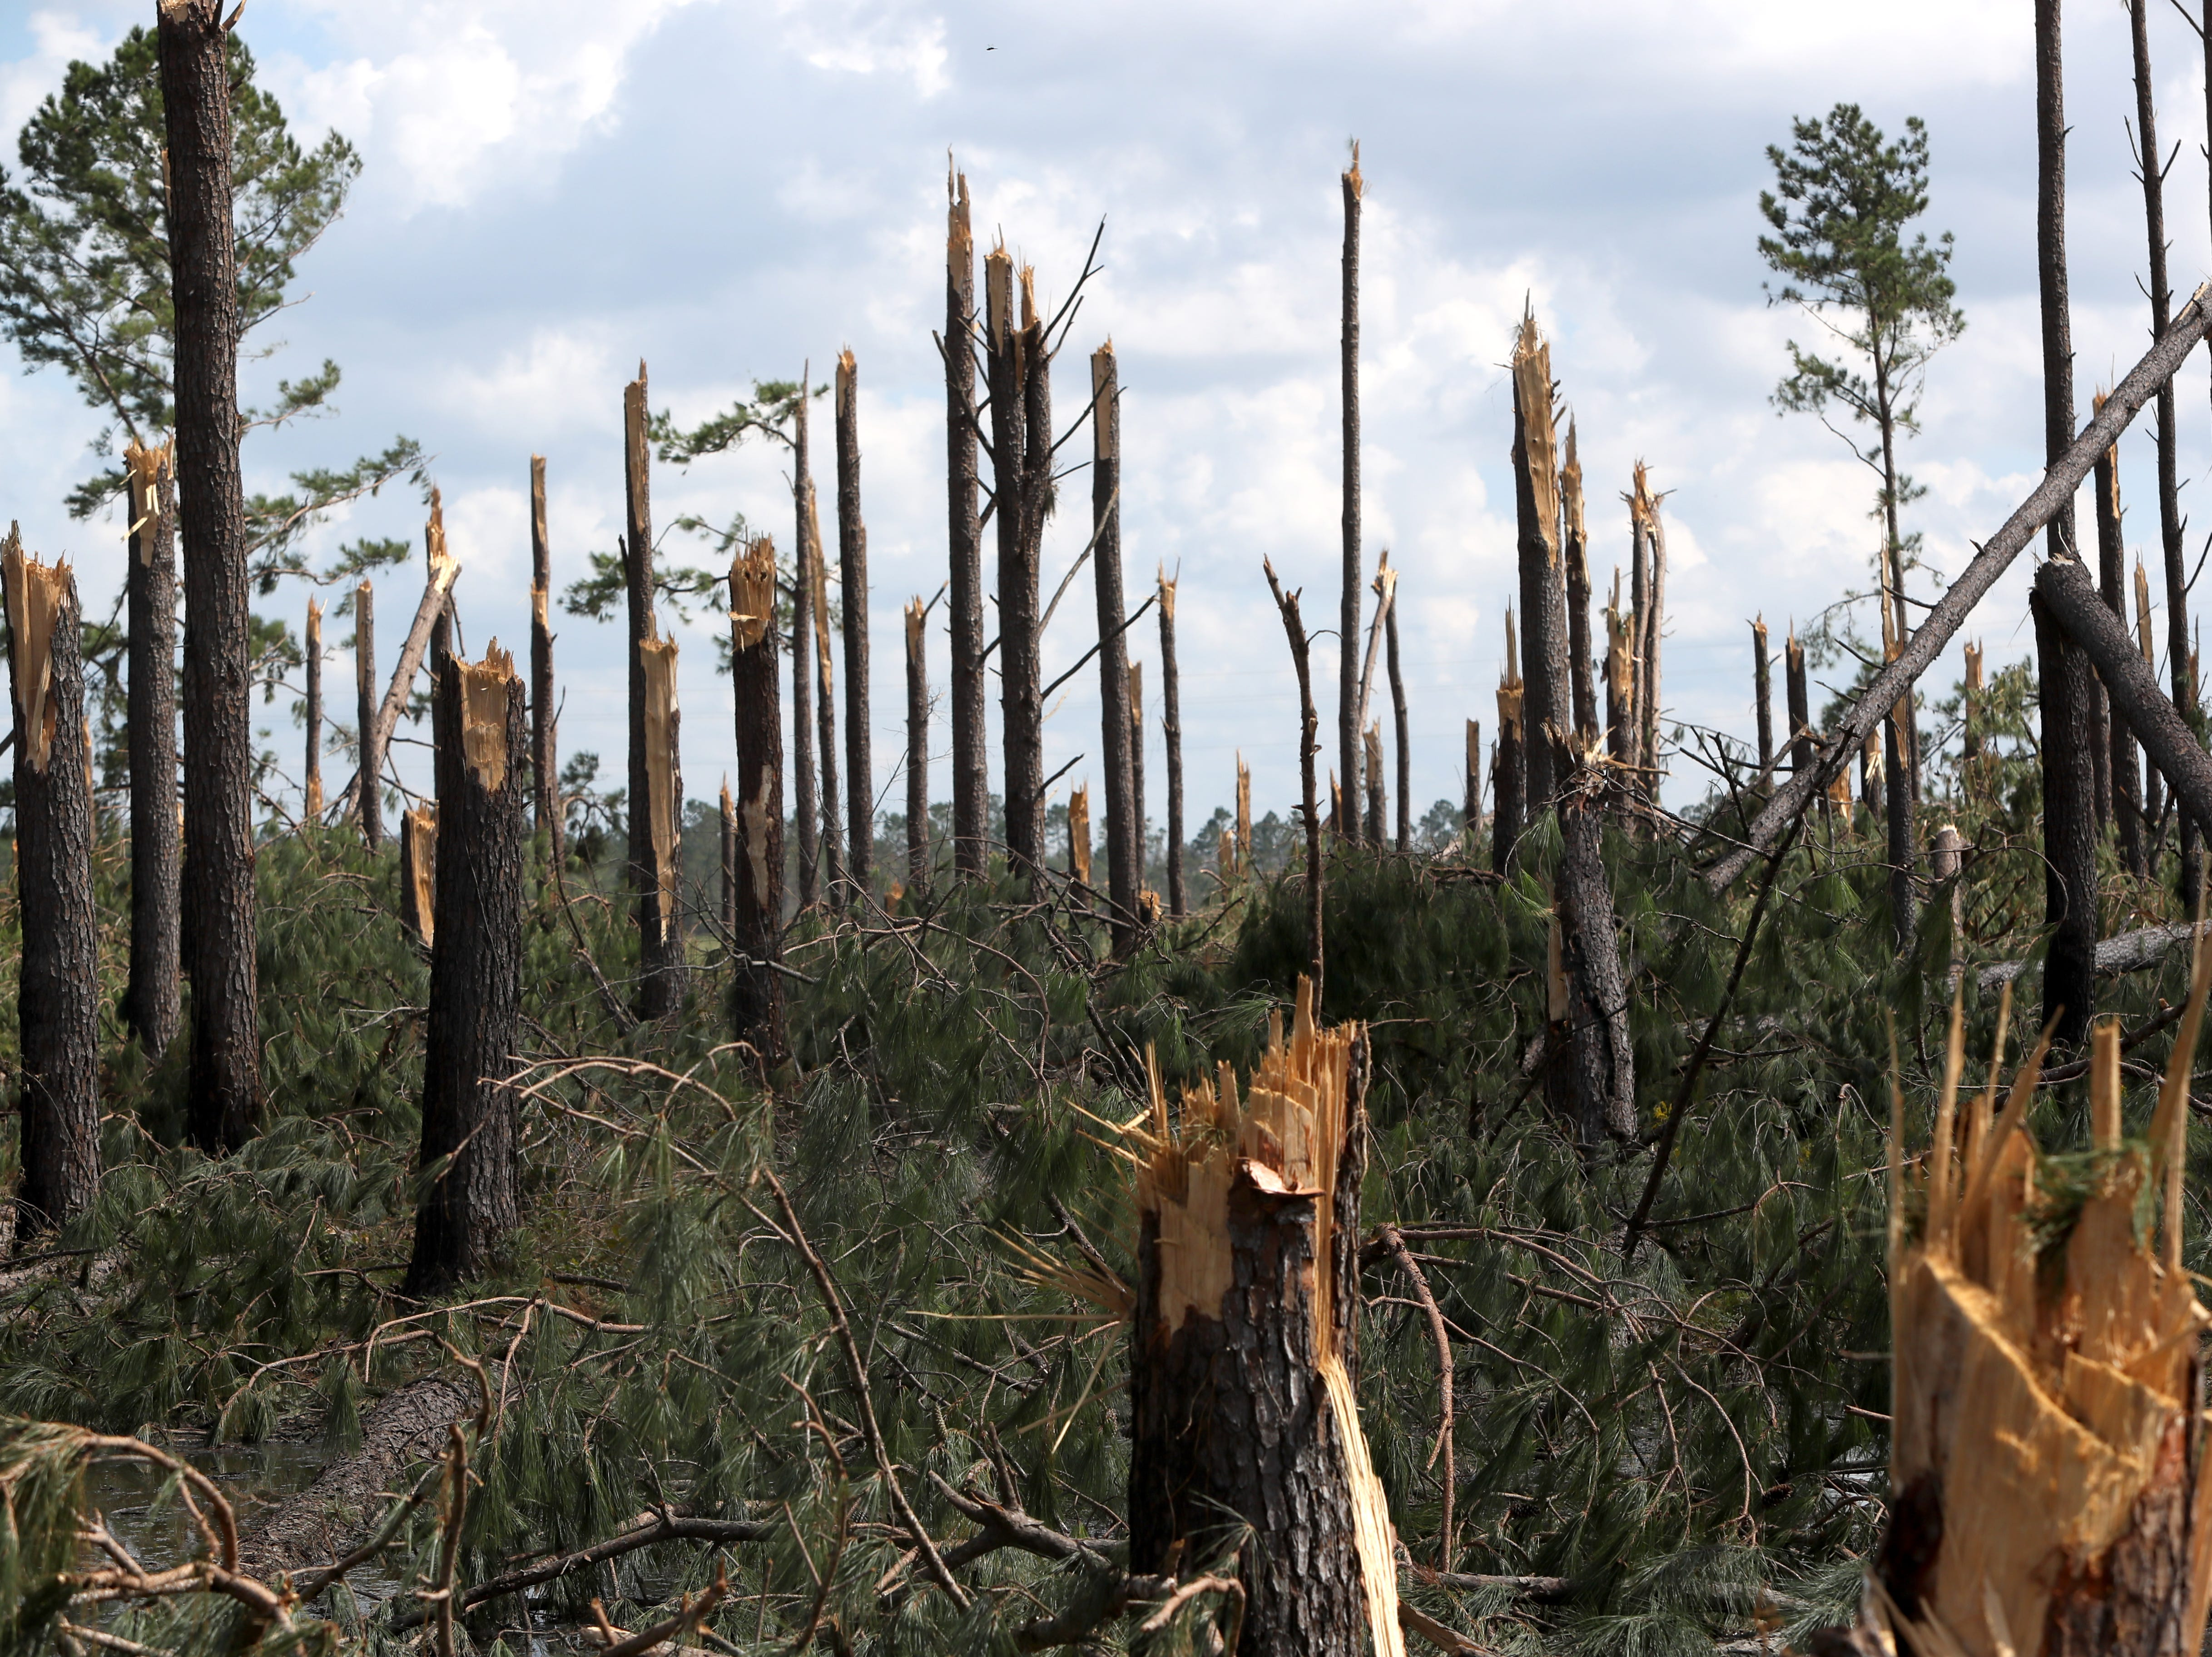 Trees along Highway 90 in between Sneads and Chattahoochee are left snapped in half along Hurricane Michael's path.